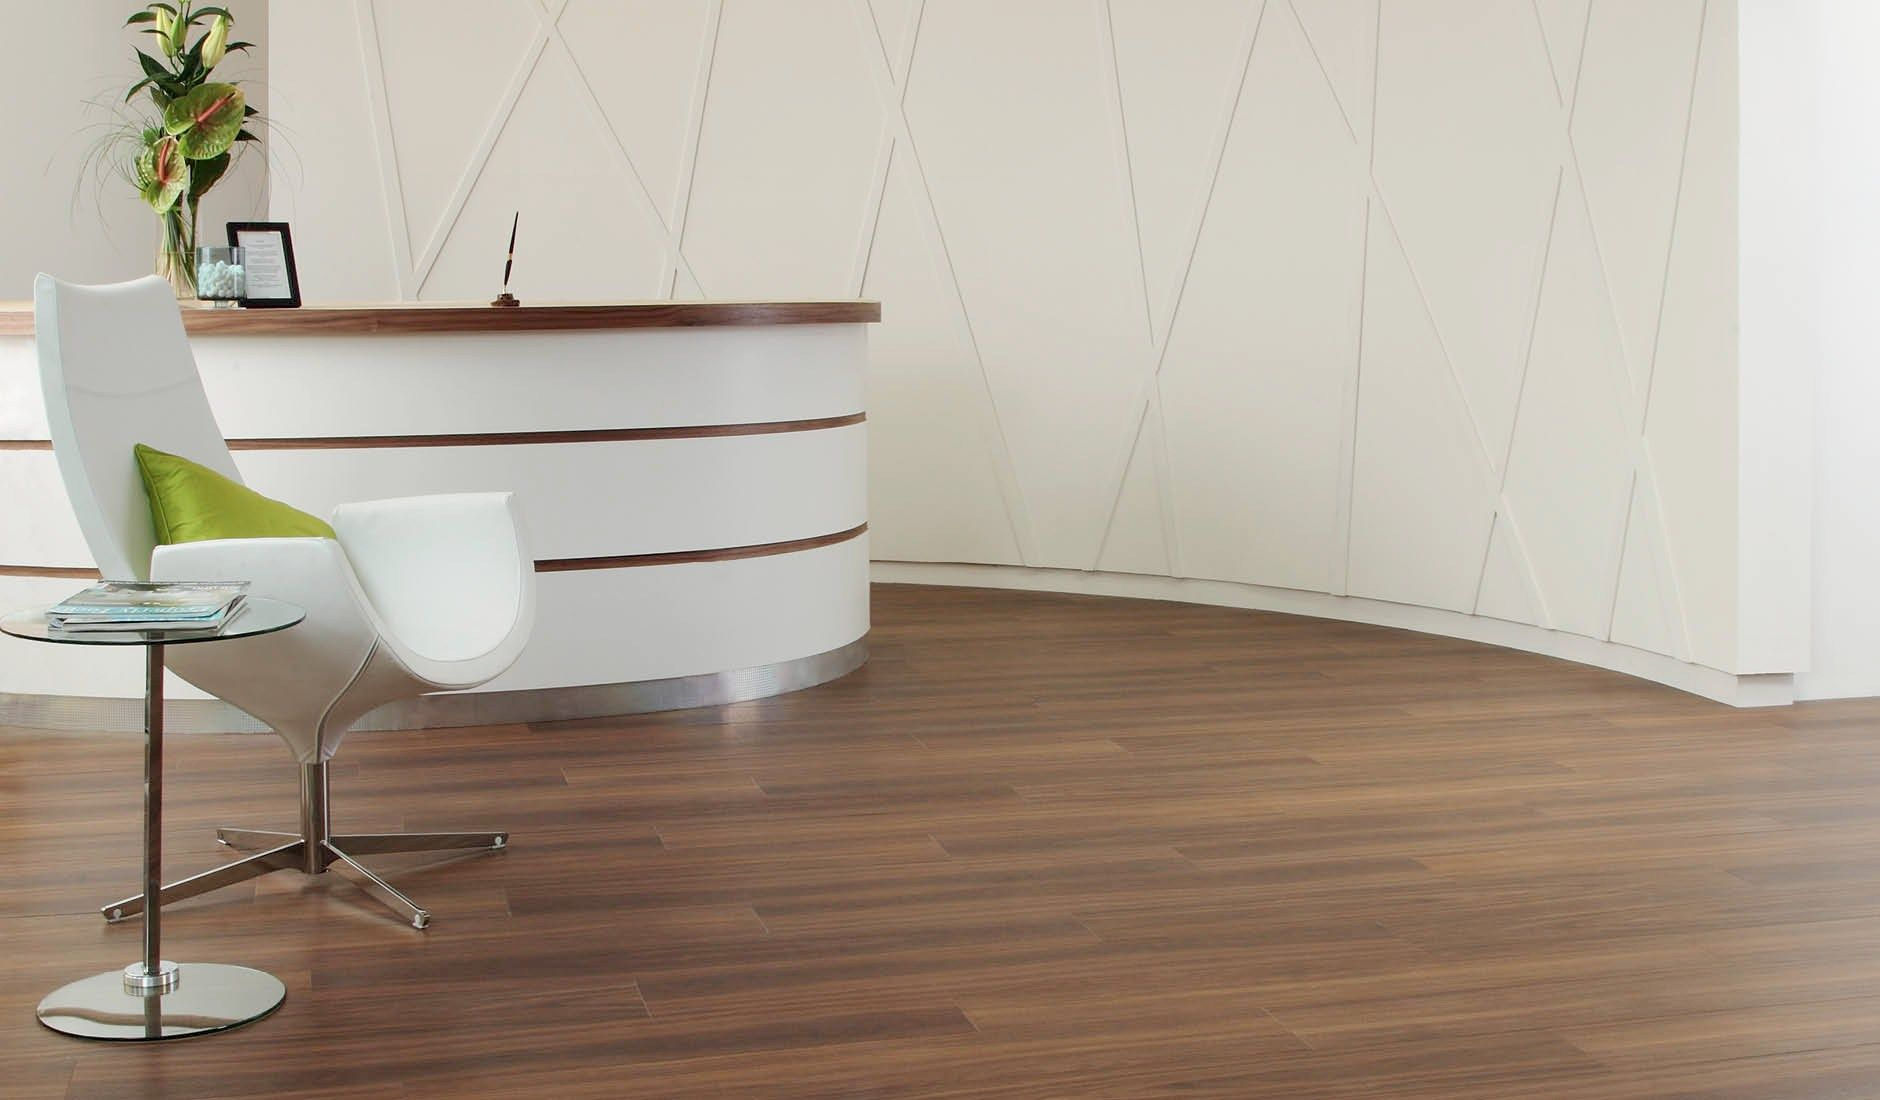 What Is The Best Wood Flooring For Office? Best wood